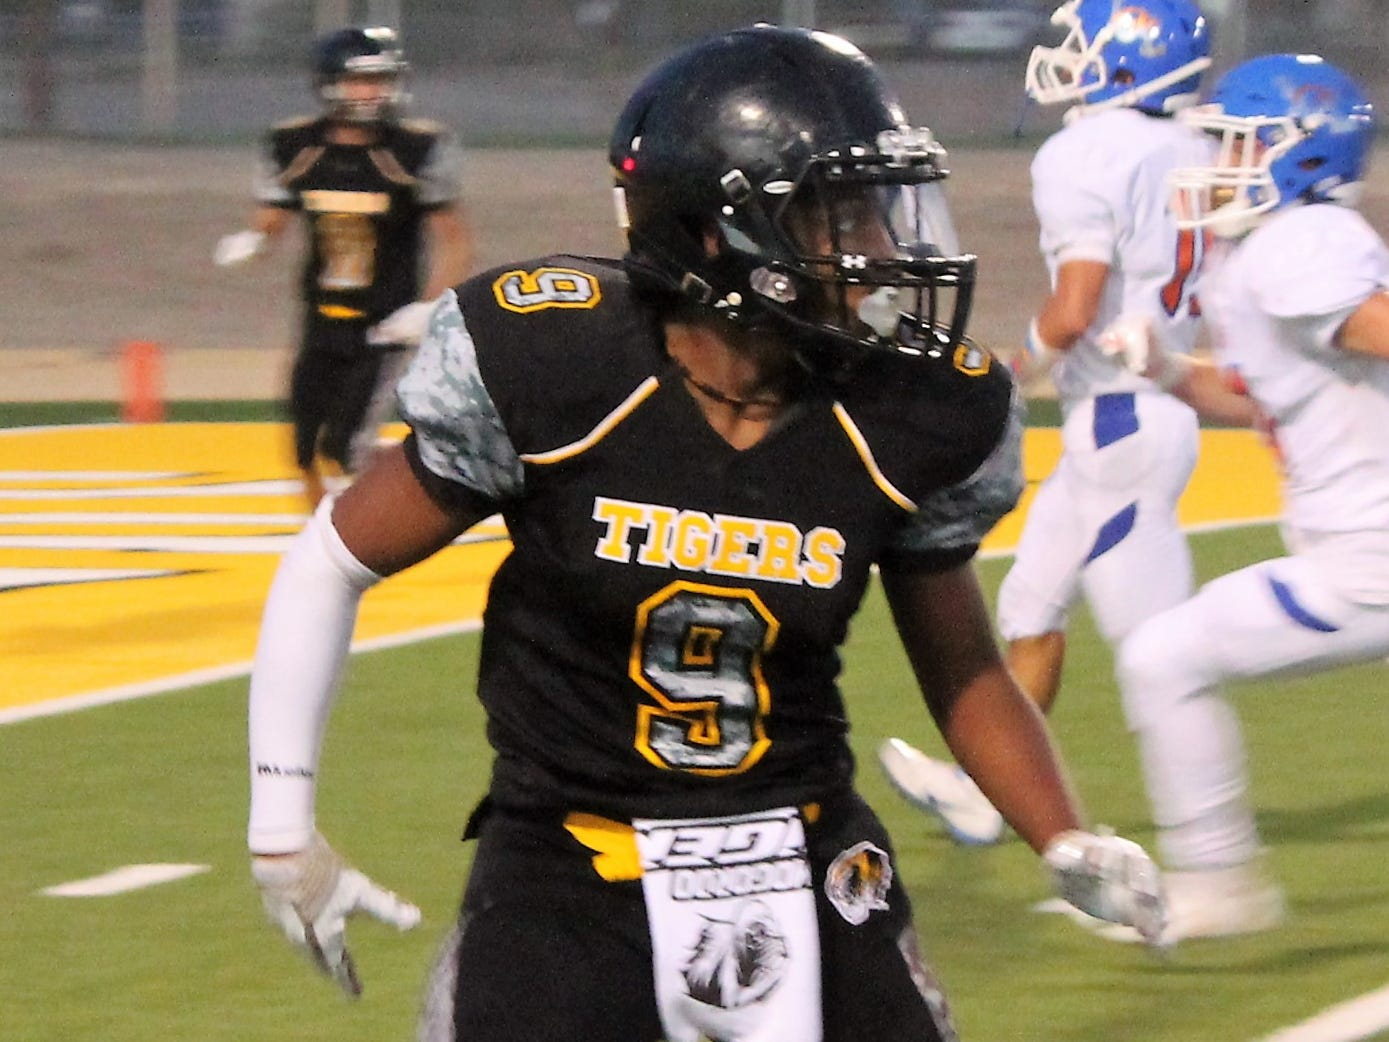 Alamogordo Tigers running back Jay Prude eyes the ball as he runs during the Tigers' games against Los Lunas Friday night.